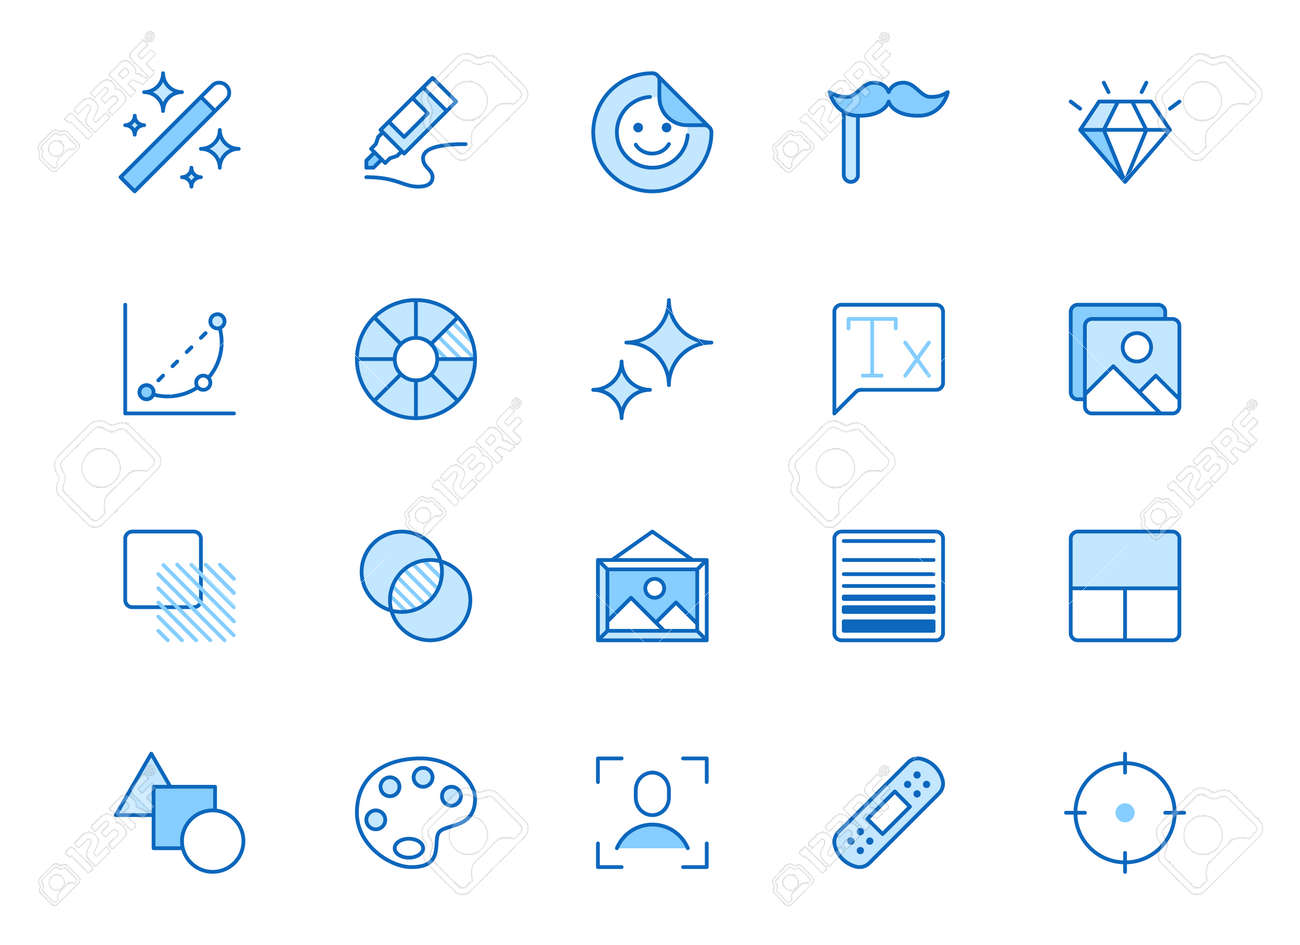 Photo edit line icon set. Image filter, add sticker, adjust curves, glow, heal minimal vector illustration. Simple outline signs for photography application ui. Blue color, Editable Stroke. - 163160941